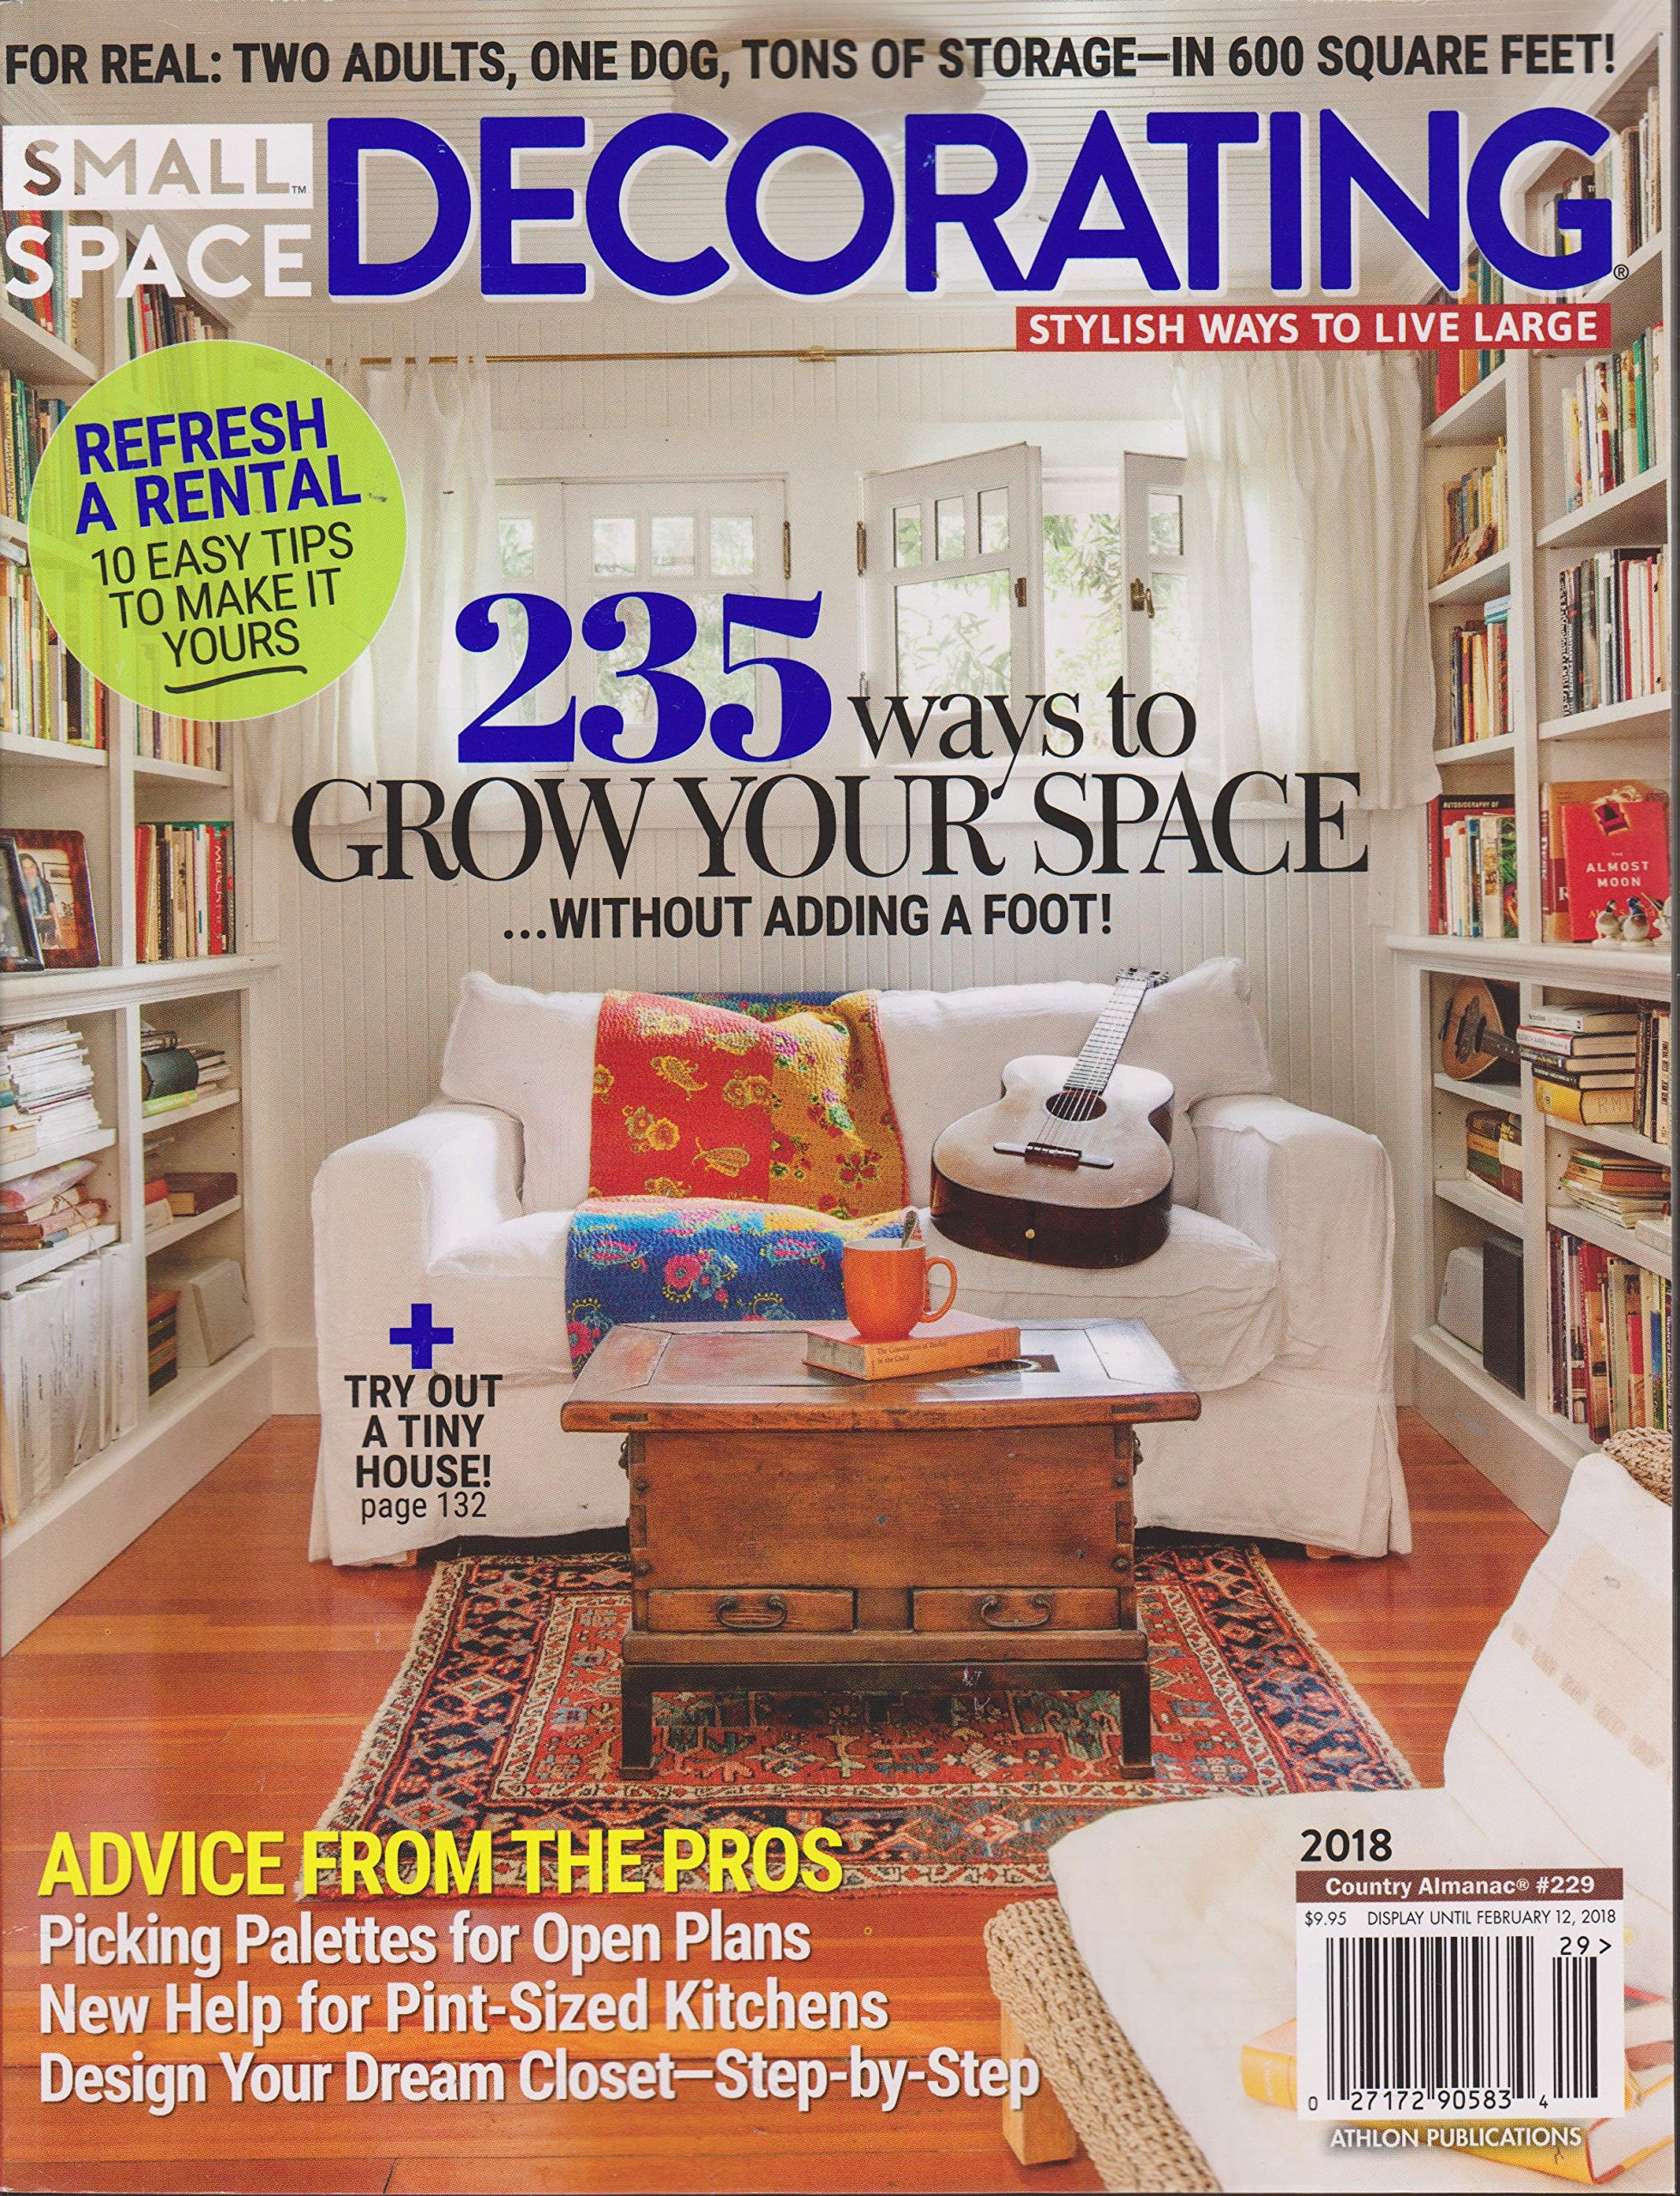 Small Space Decorating Magazine 2018   Country Almanac 229 ...